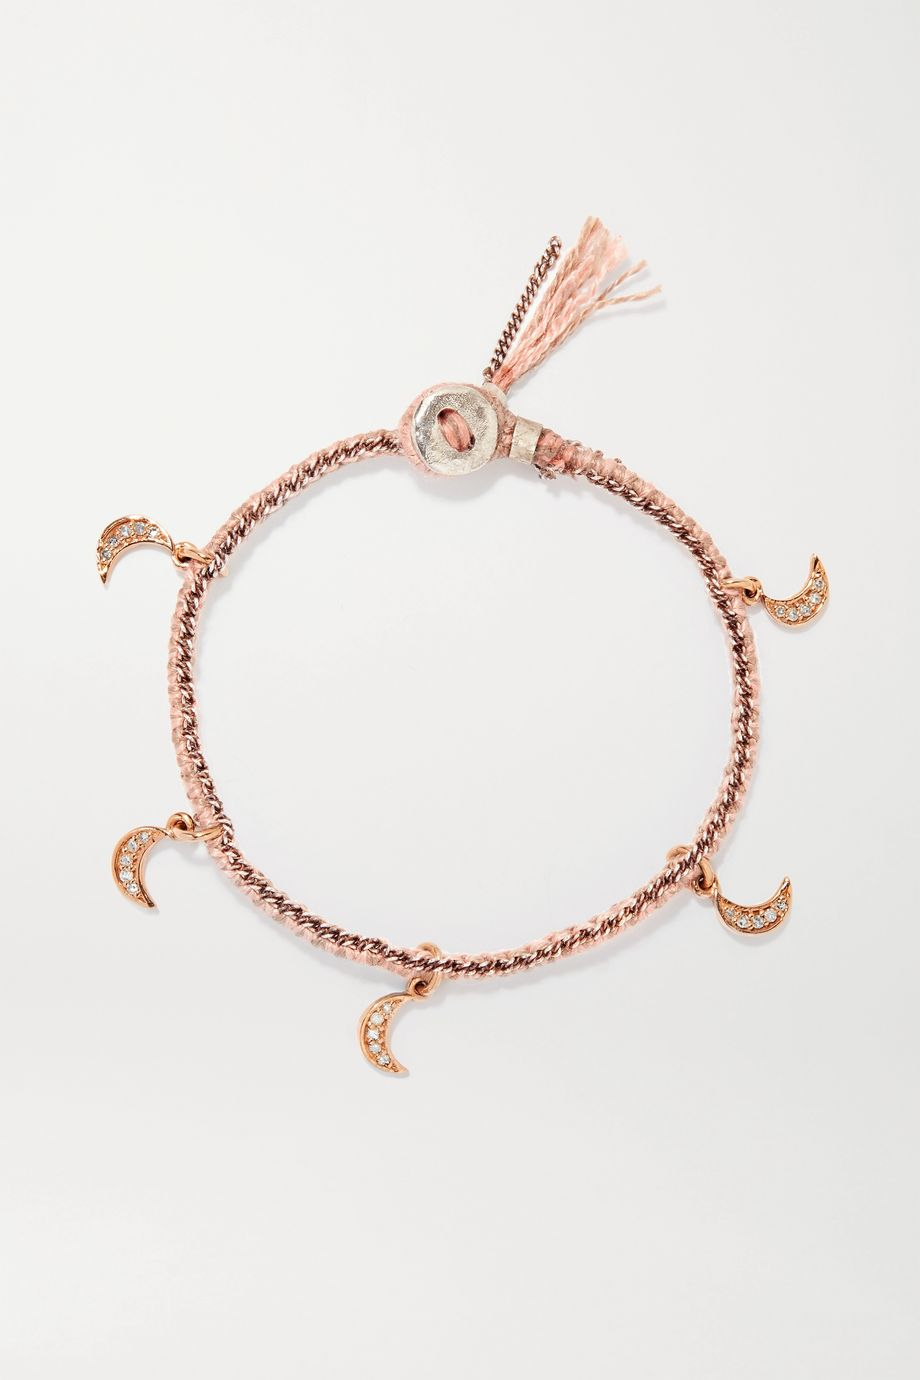 Brooke Gregson Crescent 14-karat rose gold, sterling silver, silk and diamond bracelet